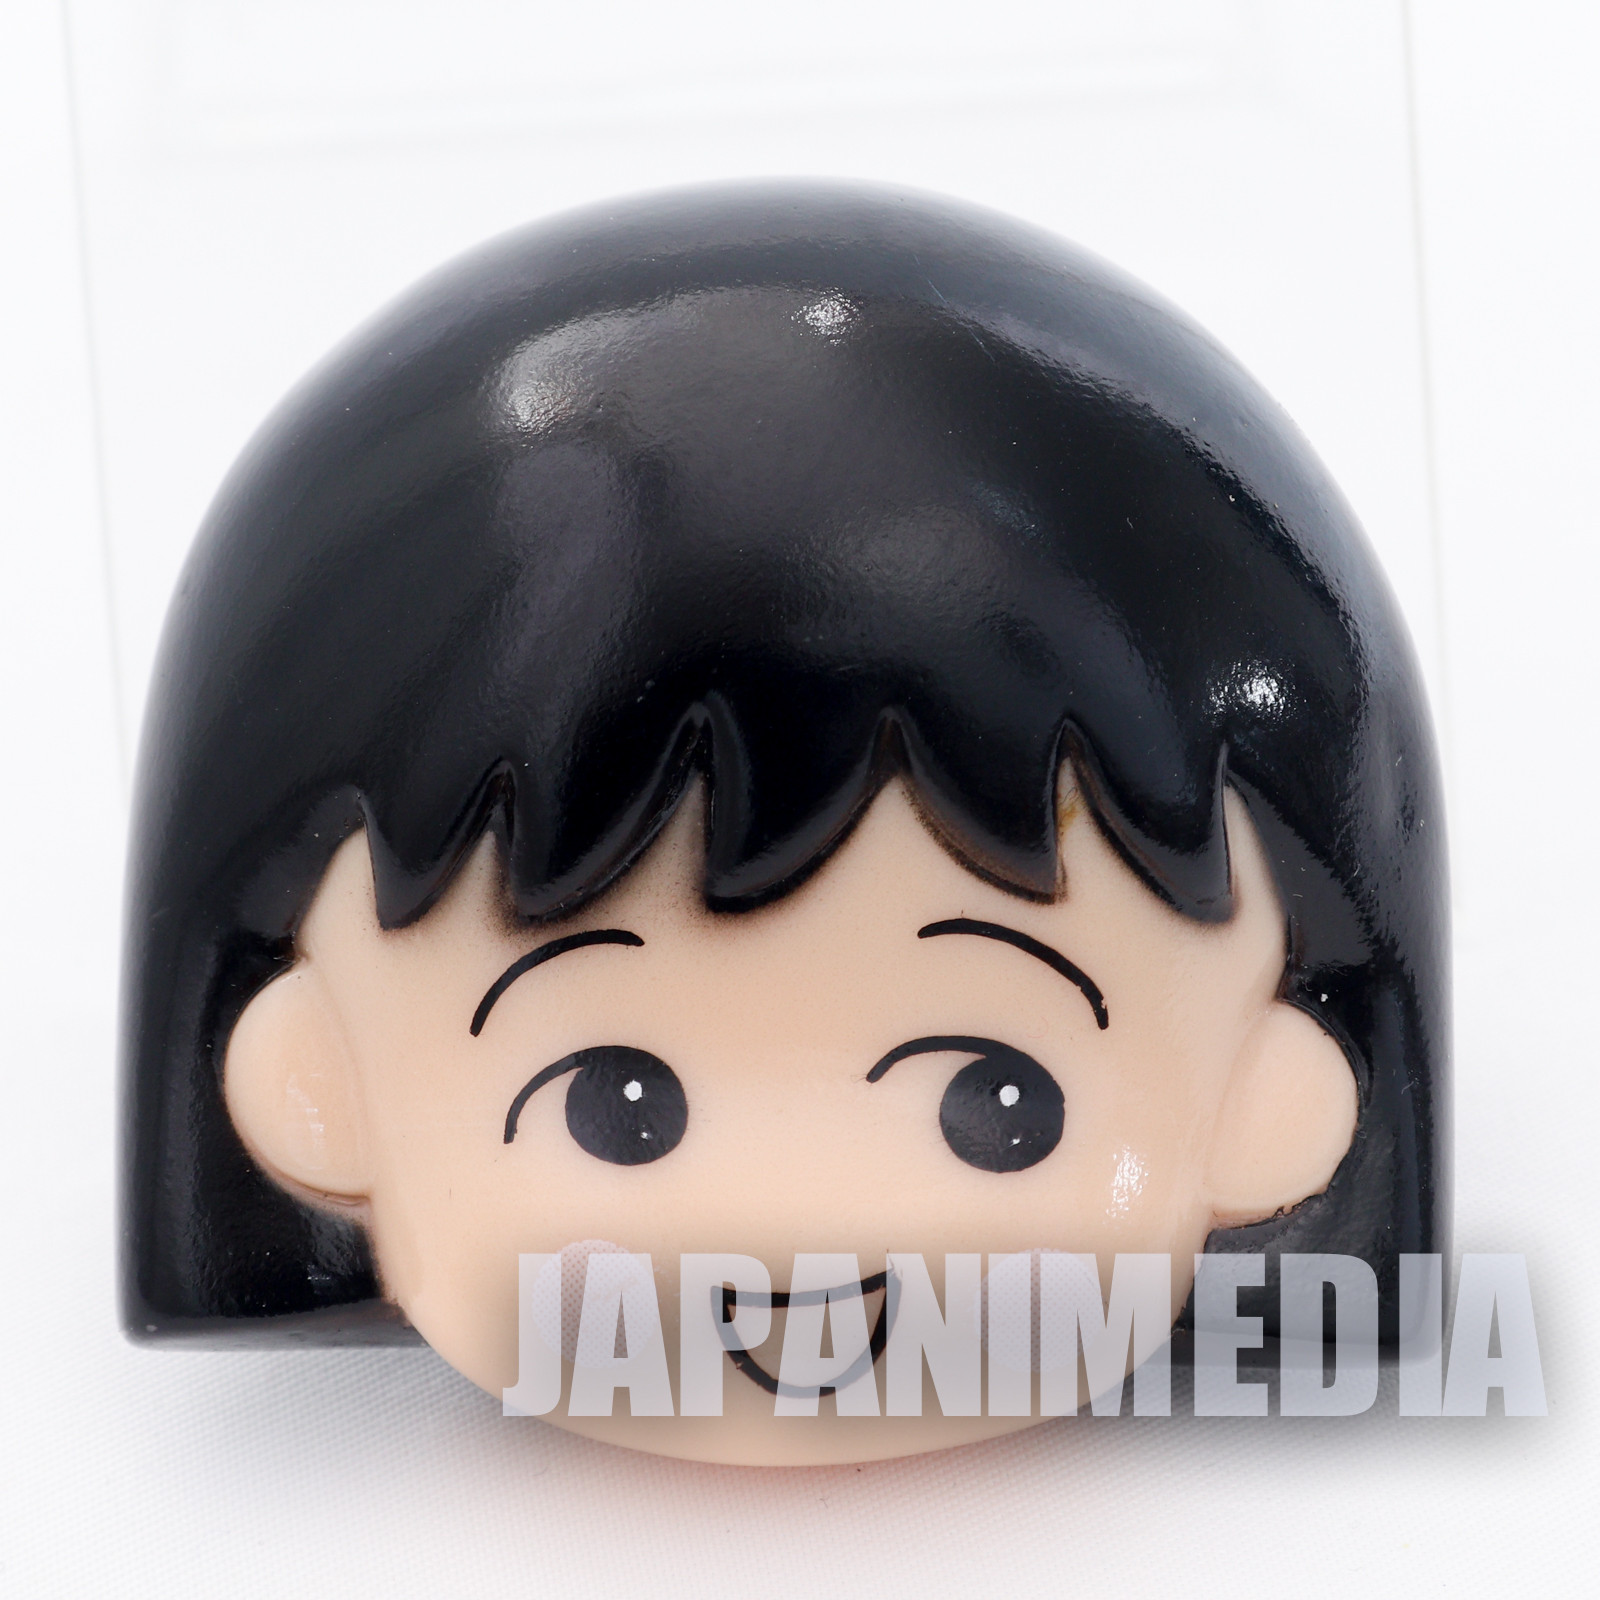 Retro Rare Chibi maruko Chan Face Mascot Brooch Pin JAPAN ANIME